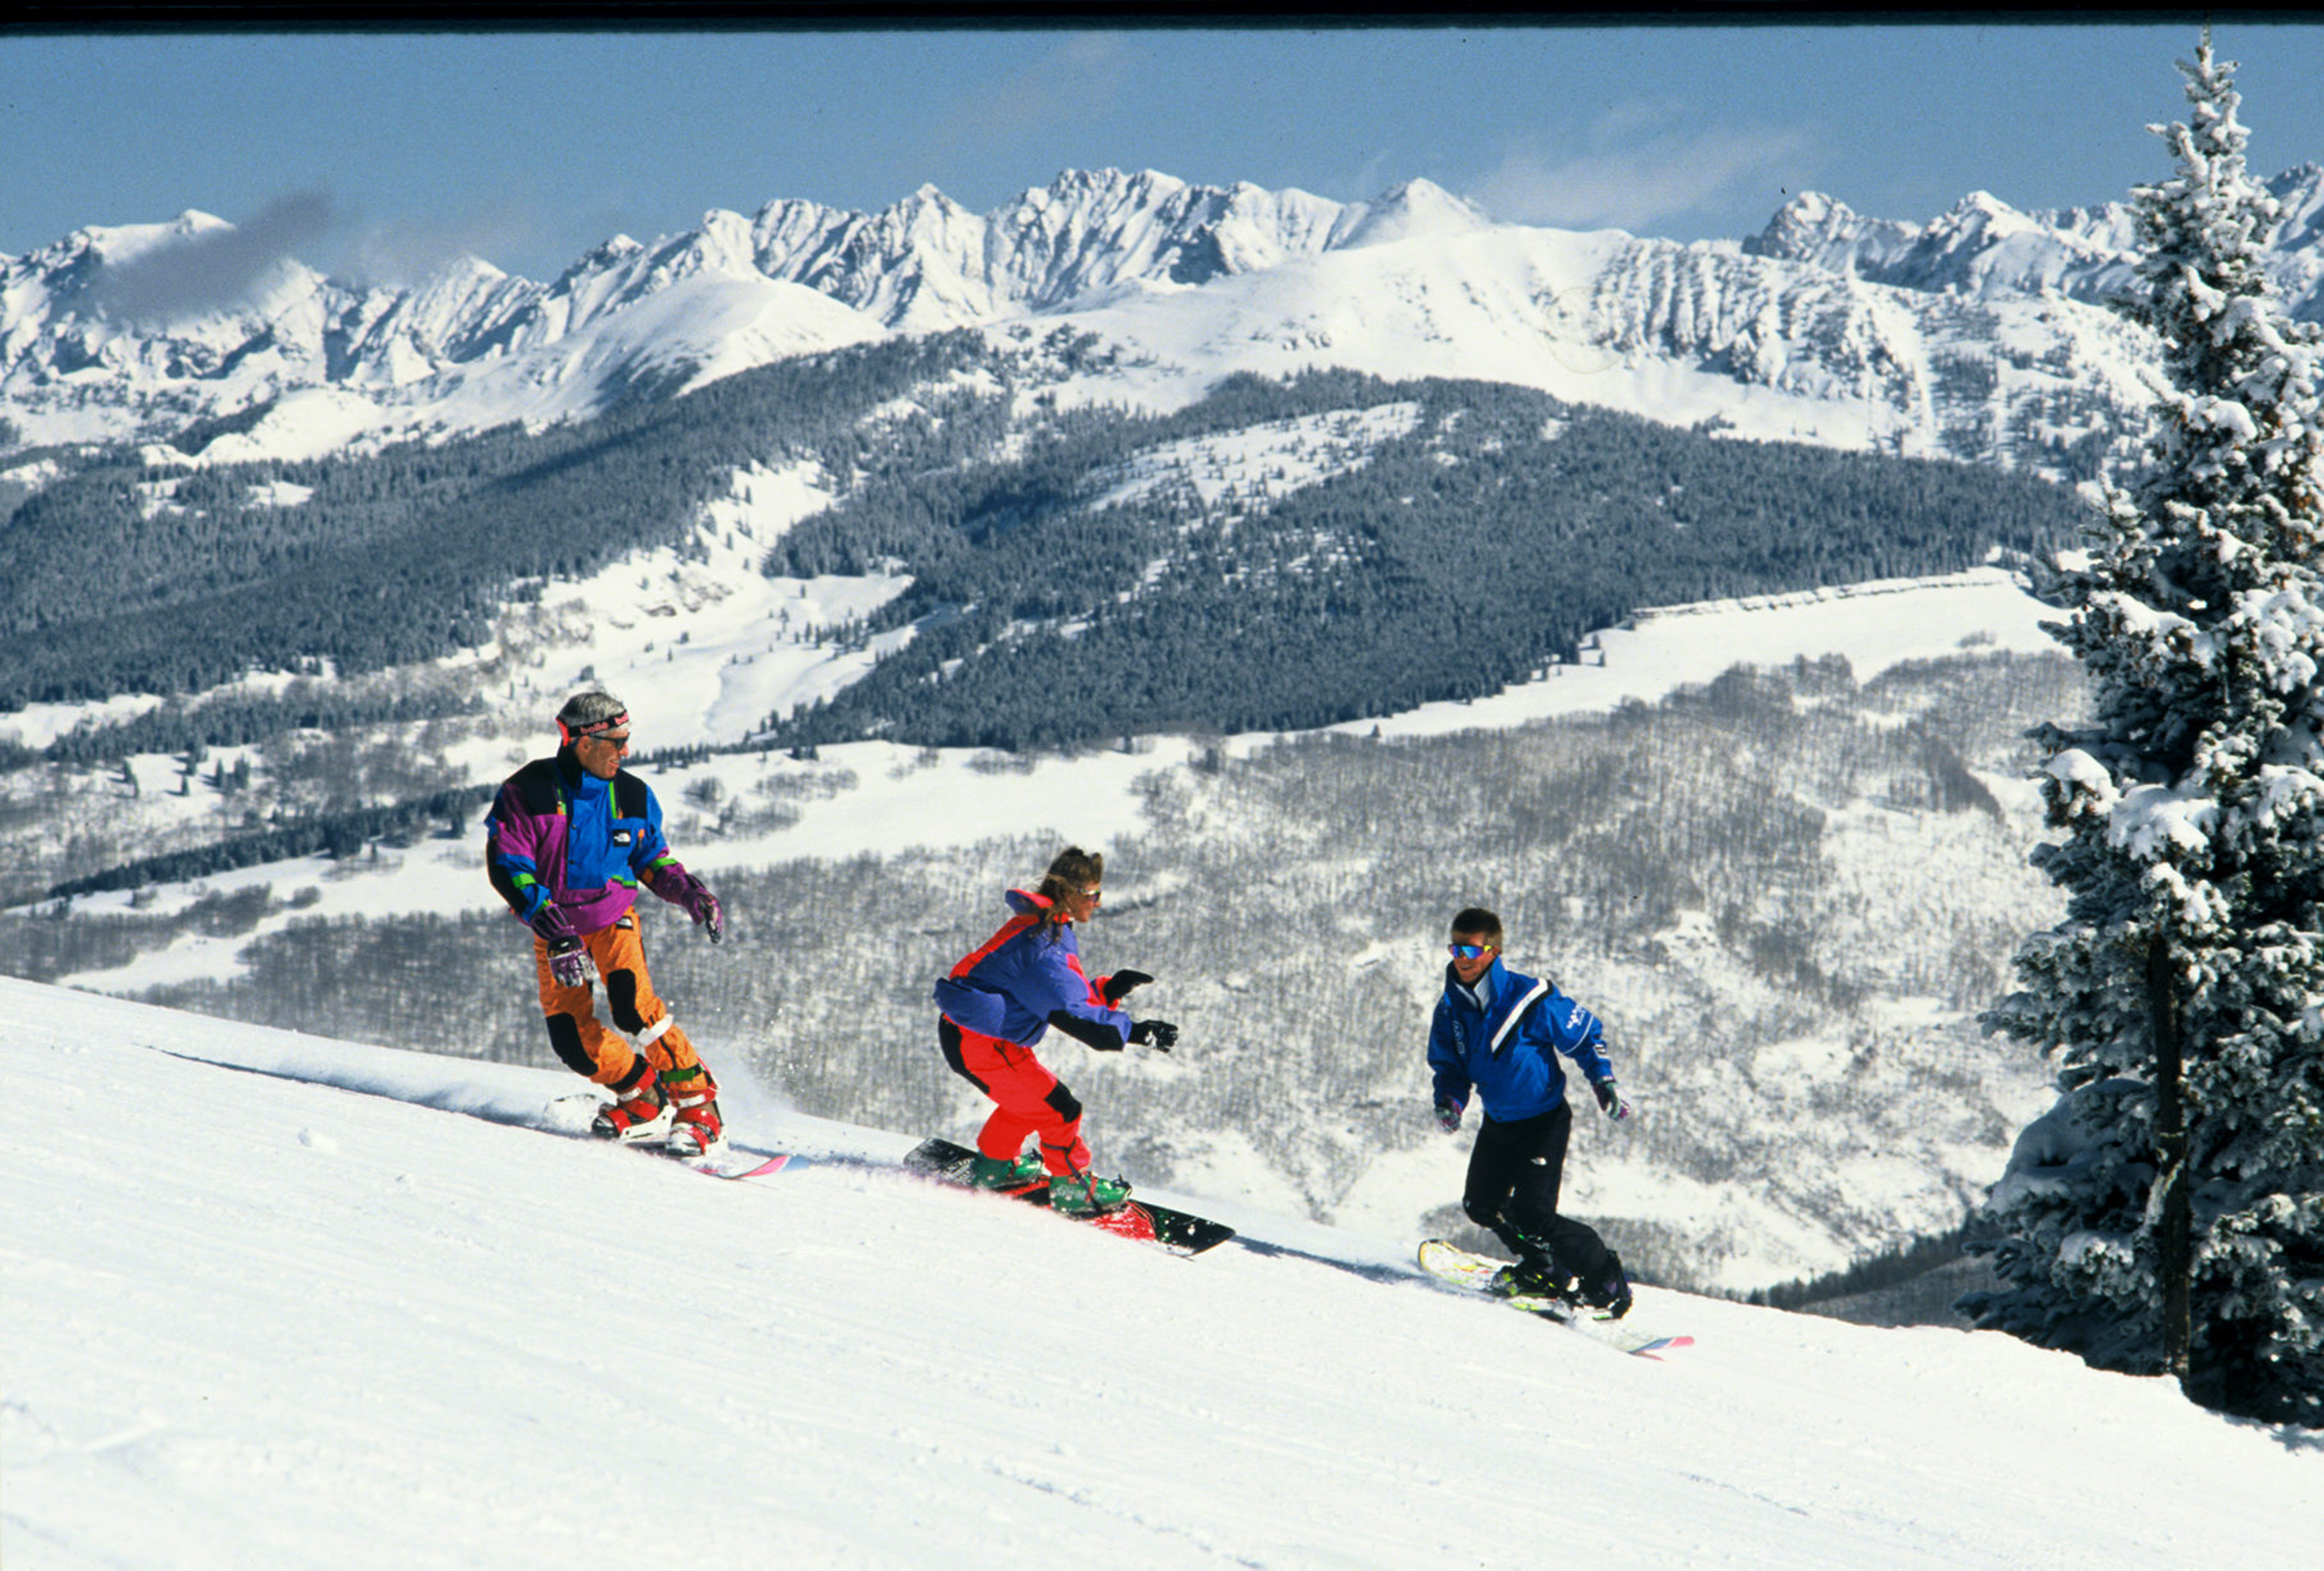 1995 Historical Images In Vail, CO. Vintage snowboarding outfits.